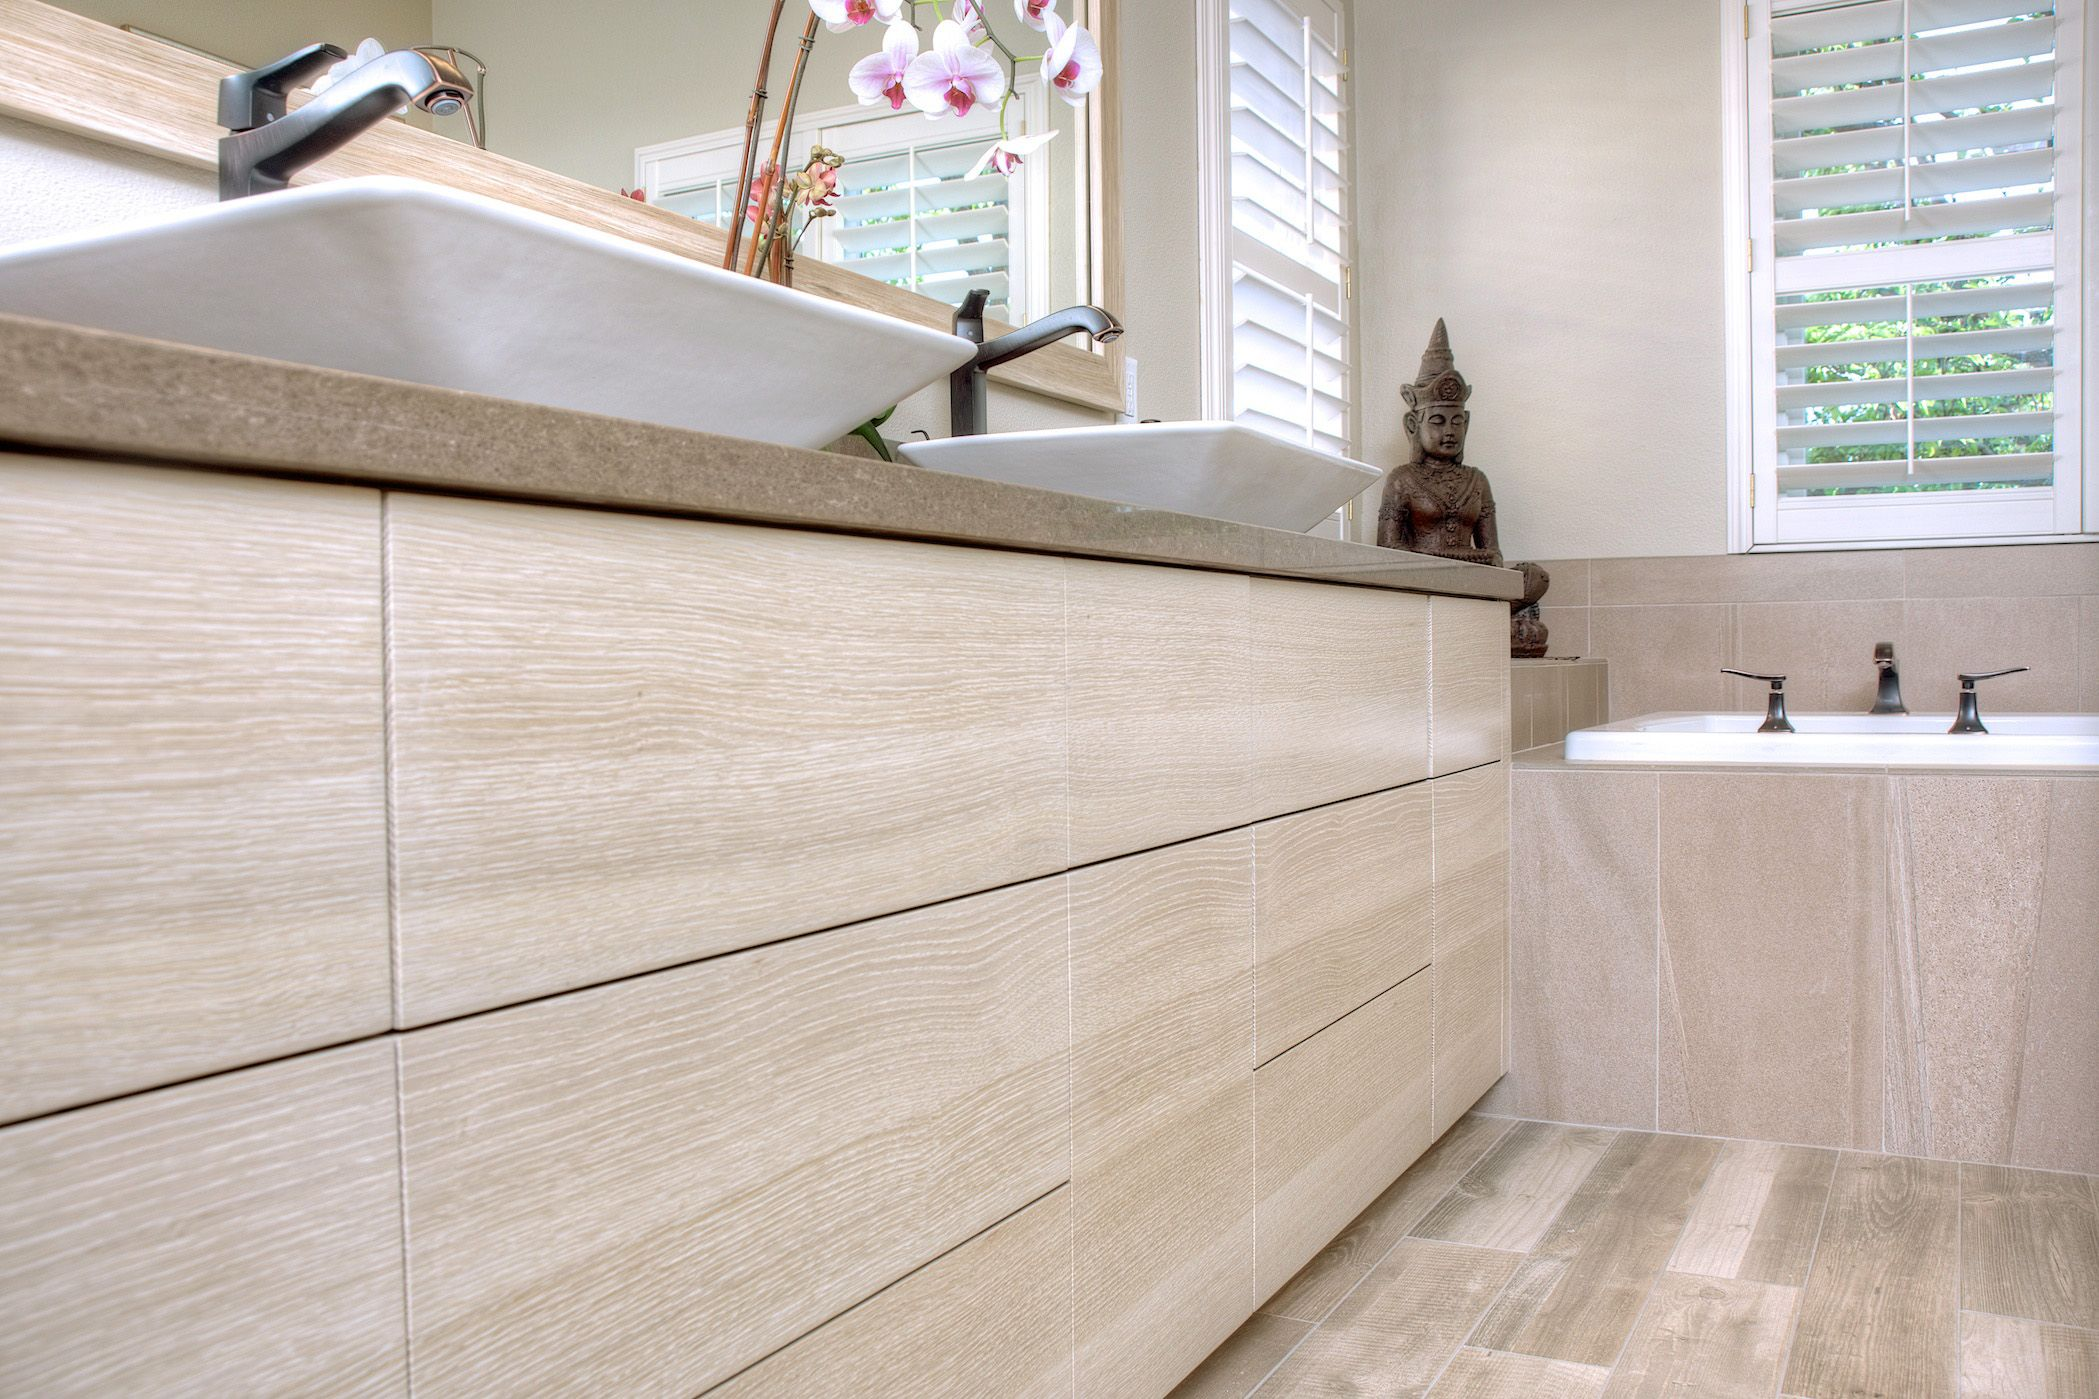 Best Custom Built Vanity Using Rift Sawn White Oak Bathrooms 400 x 300